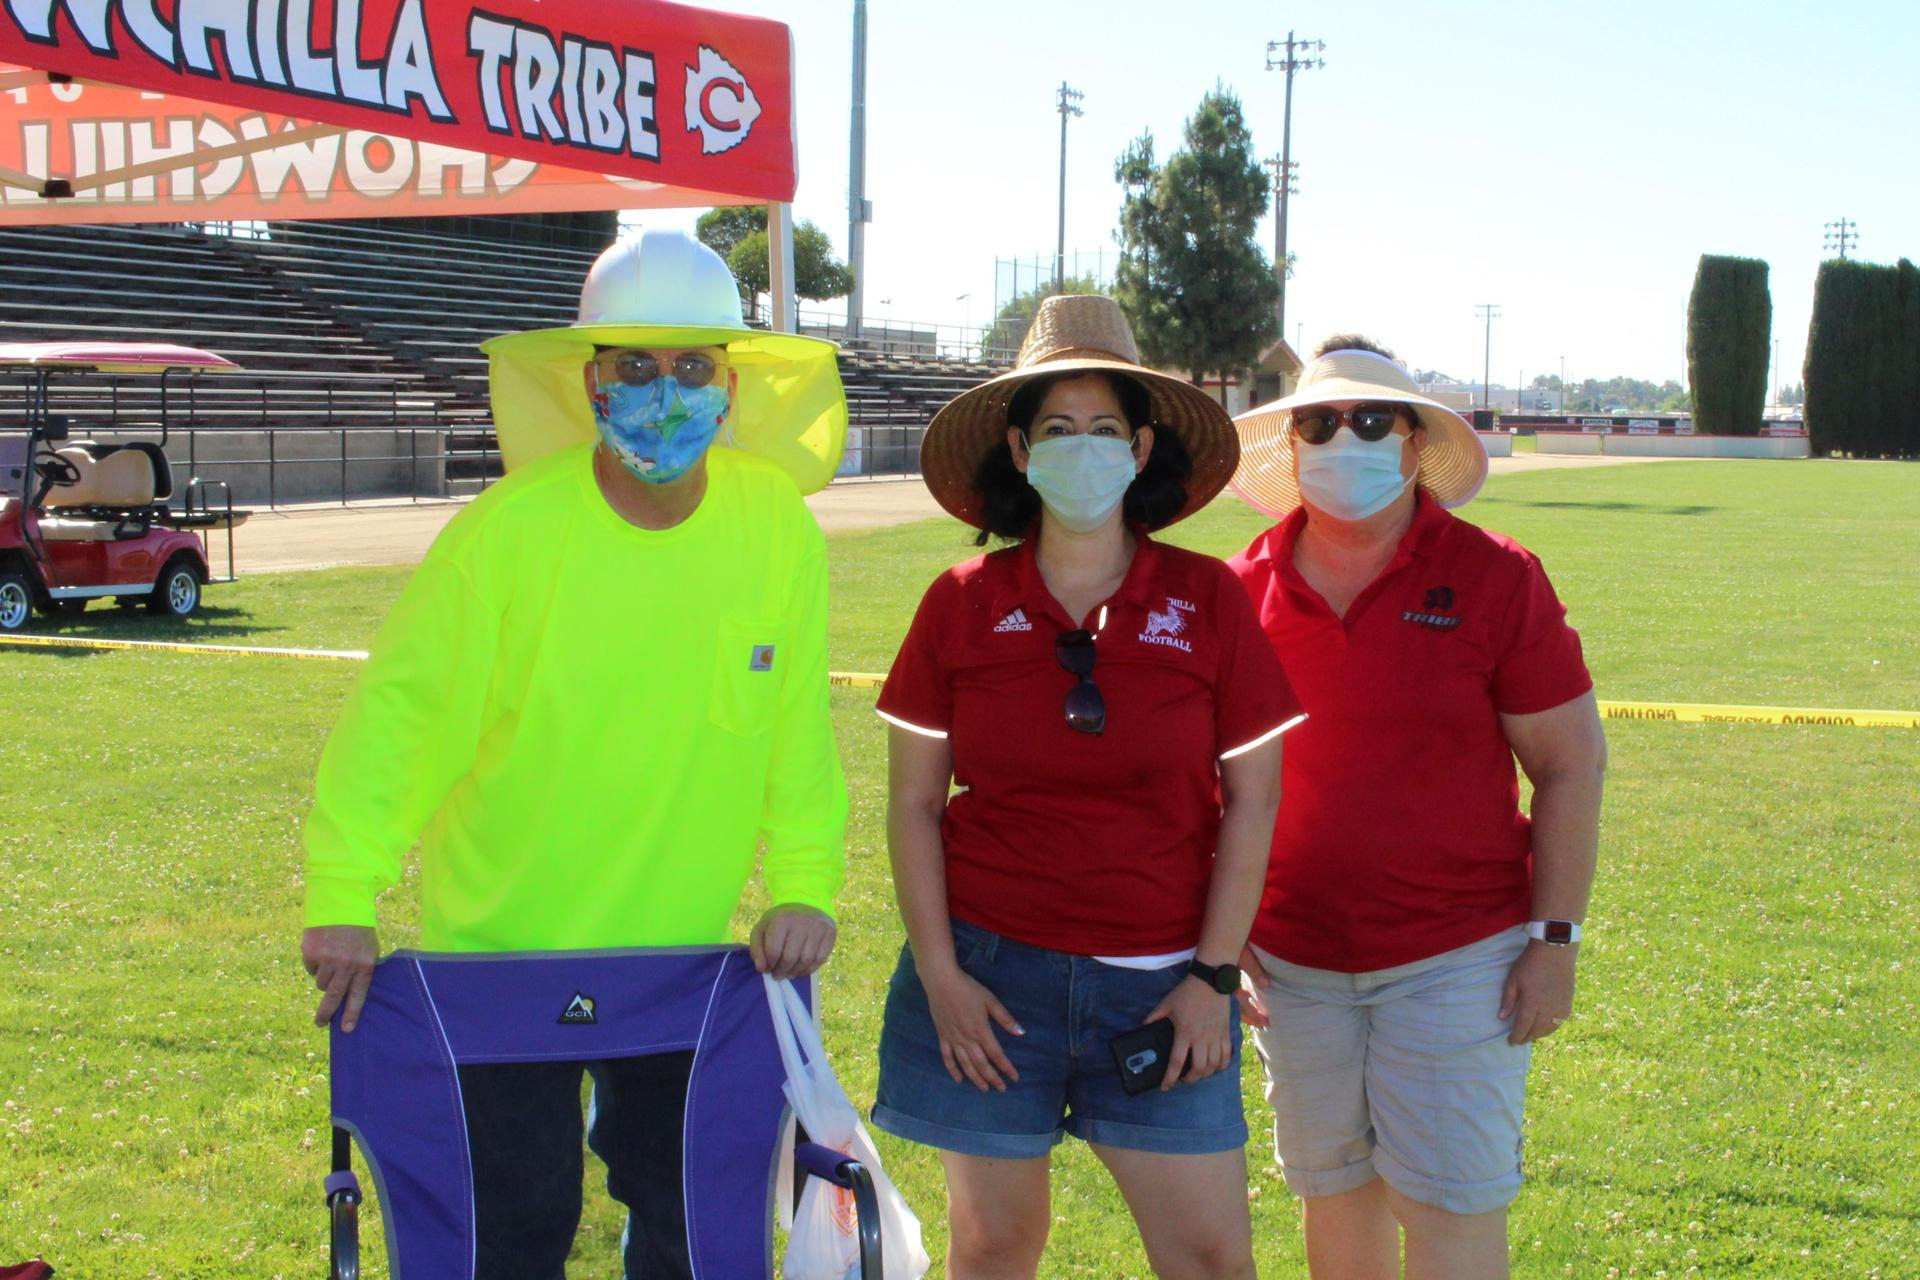 Bob Galloway, Karina Plascencia and Michelle Irwin pose at the tassel station